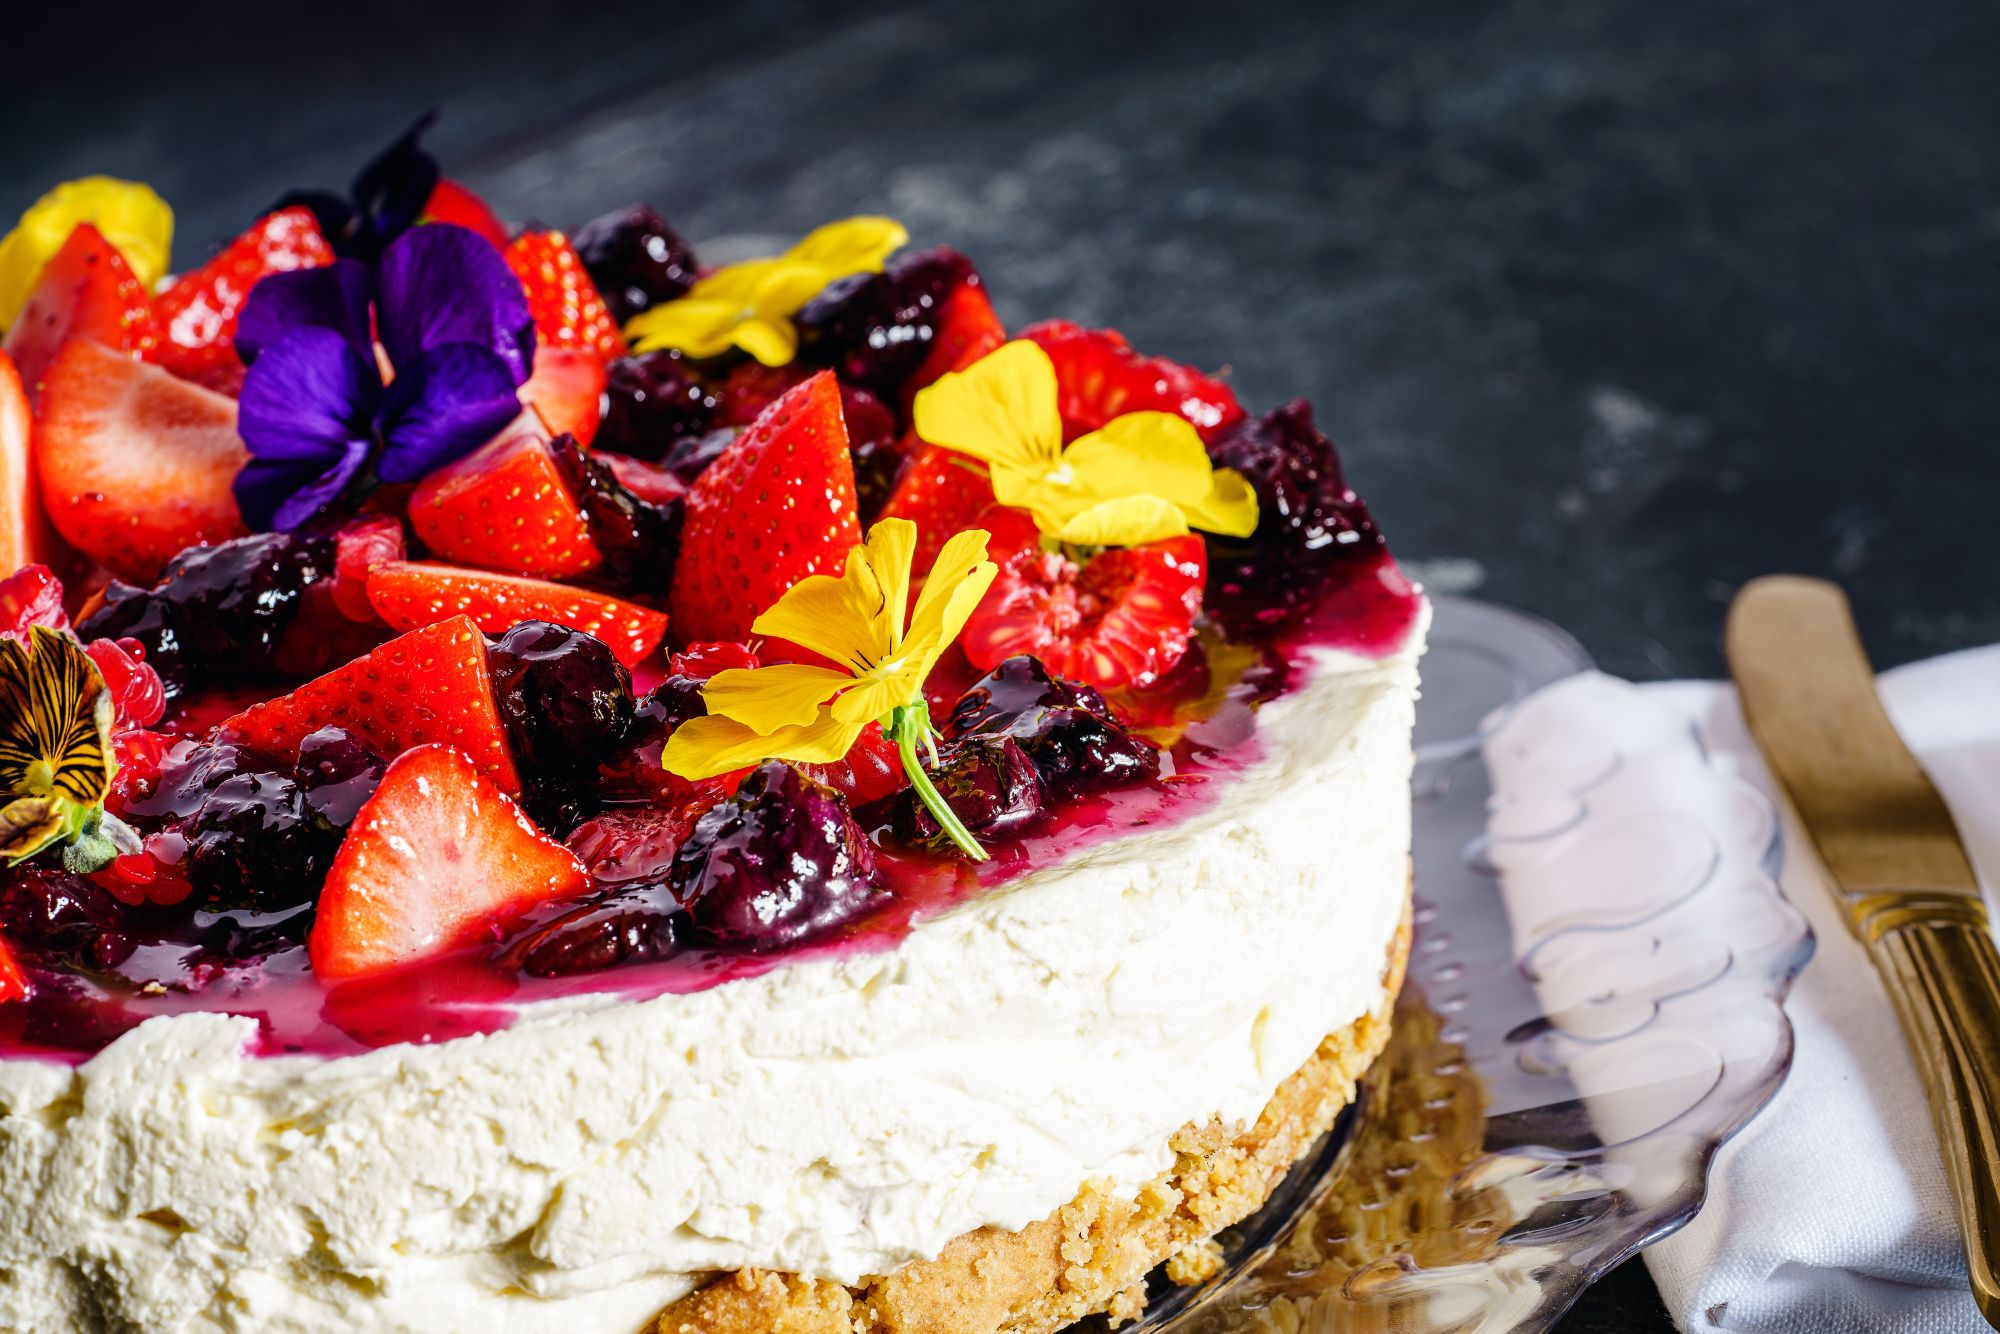 7 Vegan Desserts For The Health Conscious: Where To Buy in Metro Manila